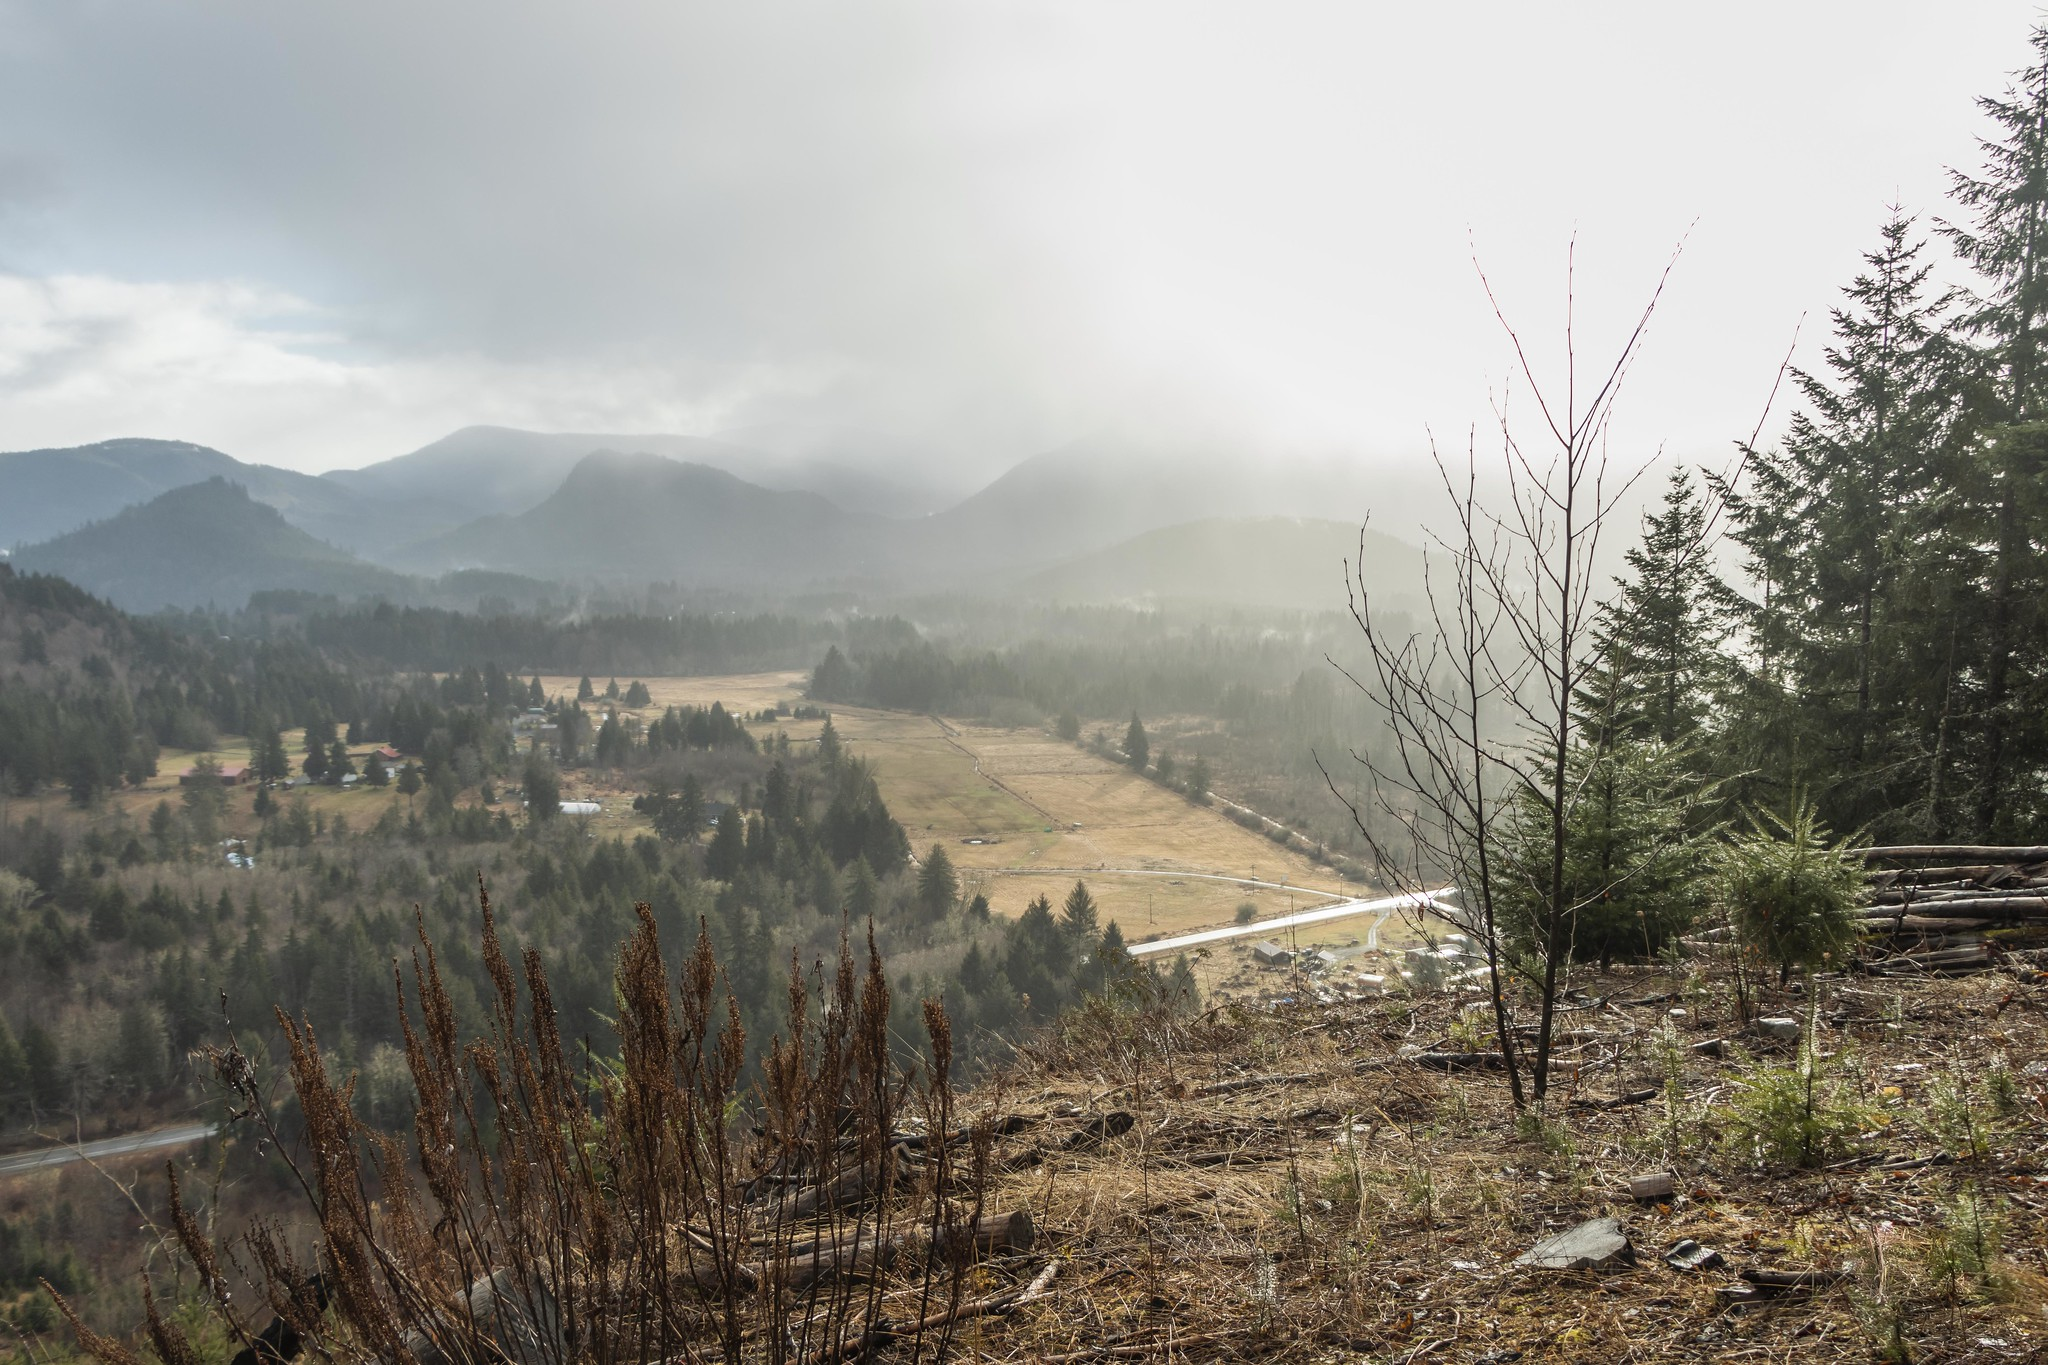 Eastern valley view from the clear-cut